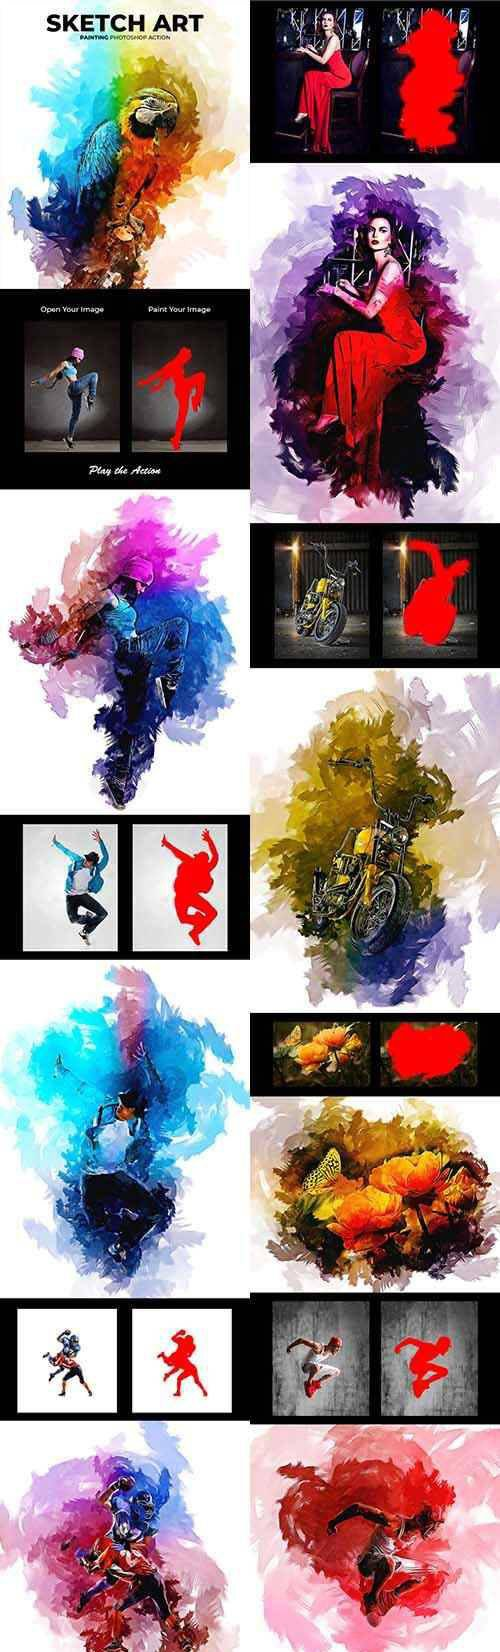 Sketch Art Painting Photoshop Action 22437485